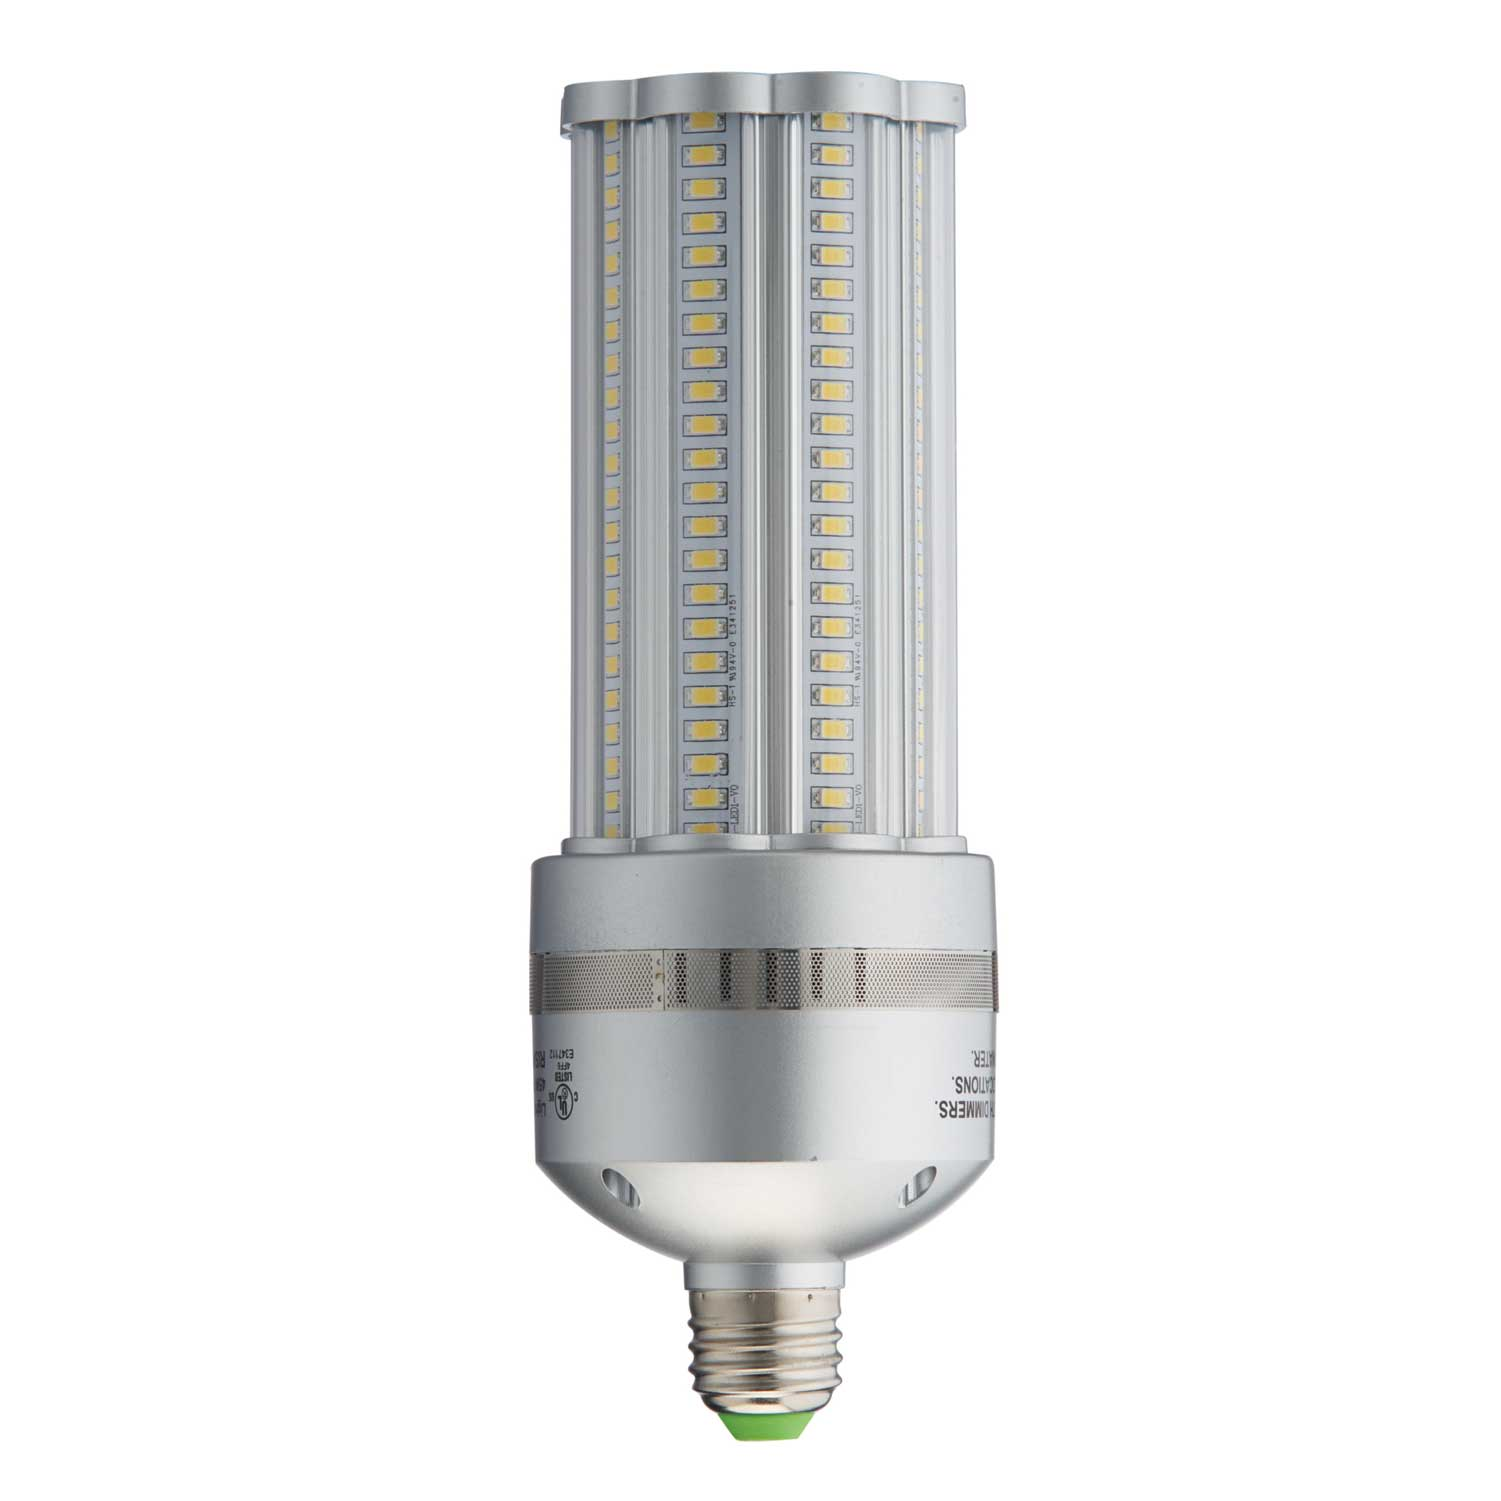 Light Efficient Design LED 8024E 45W Post Top / Site Lightingw/Std Base 5700K Retrofit Lamp, LED-8024E57